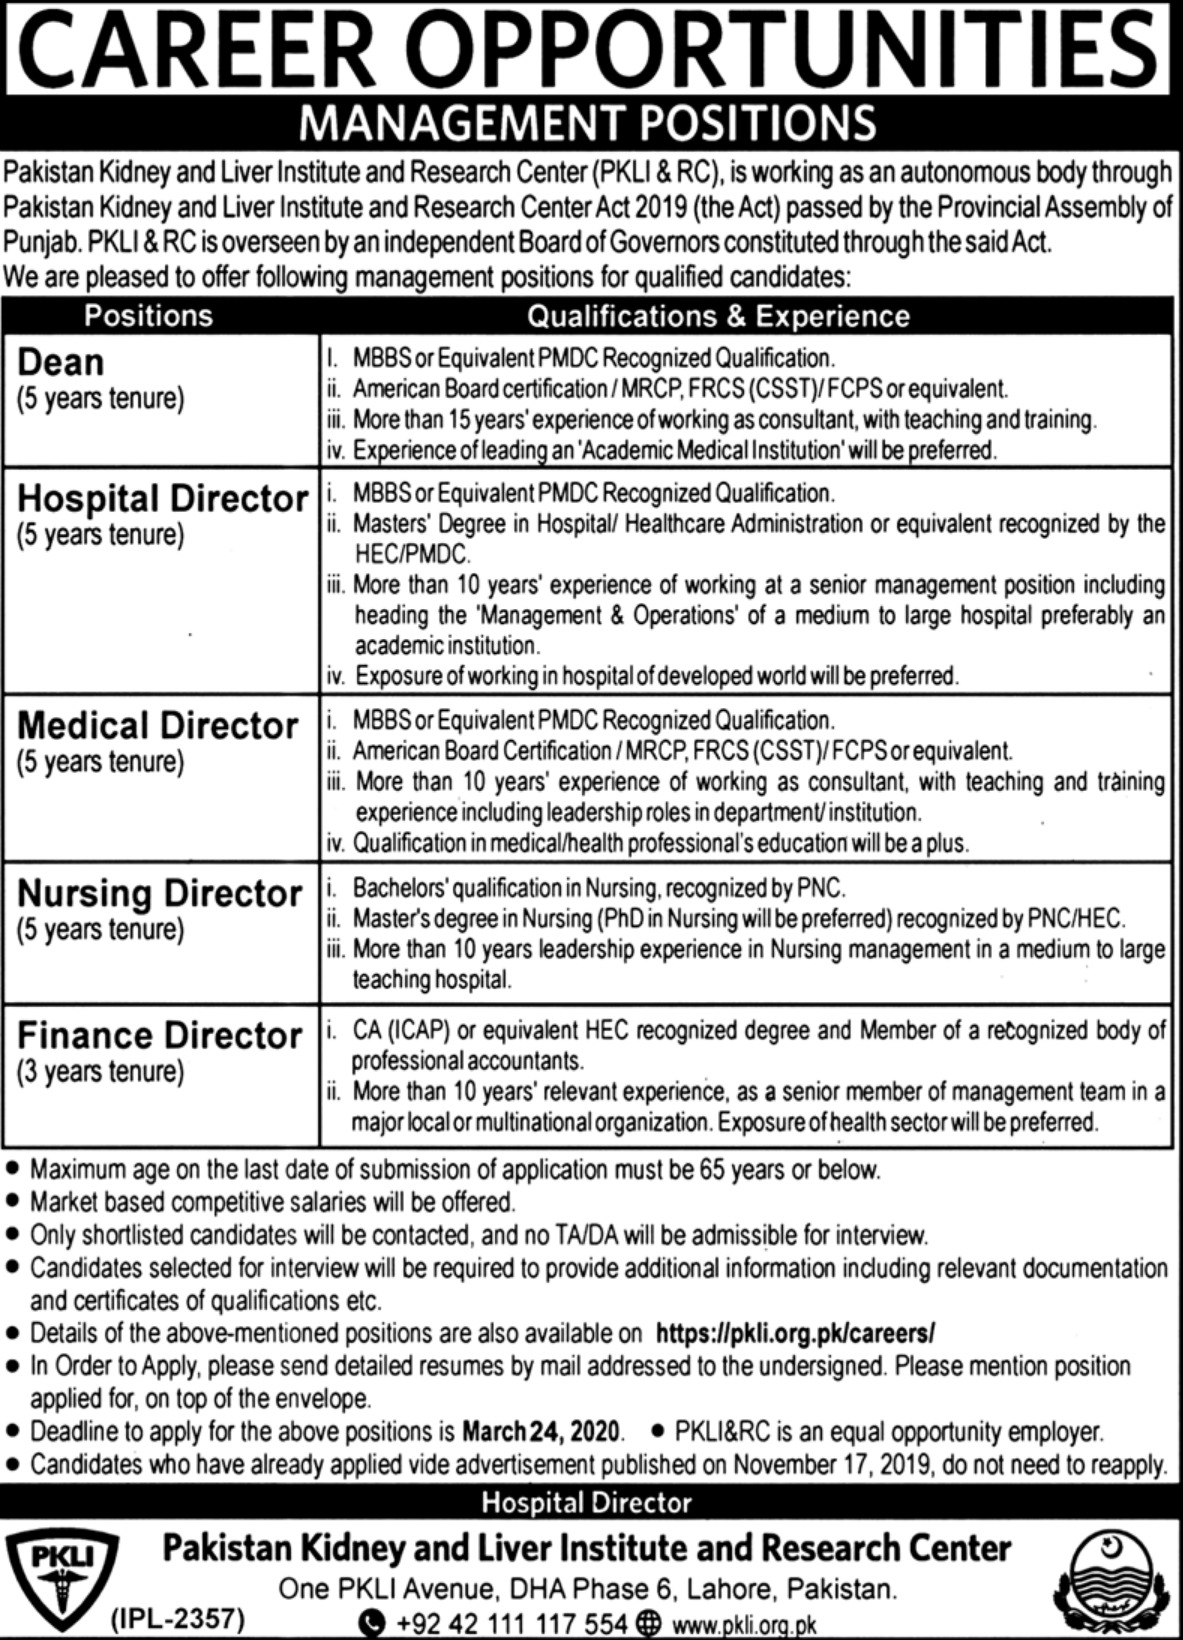 Pakistan Kidney & Liver Institute and Research Center PKLI &RC Jobs 2020